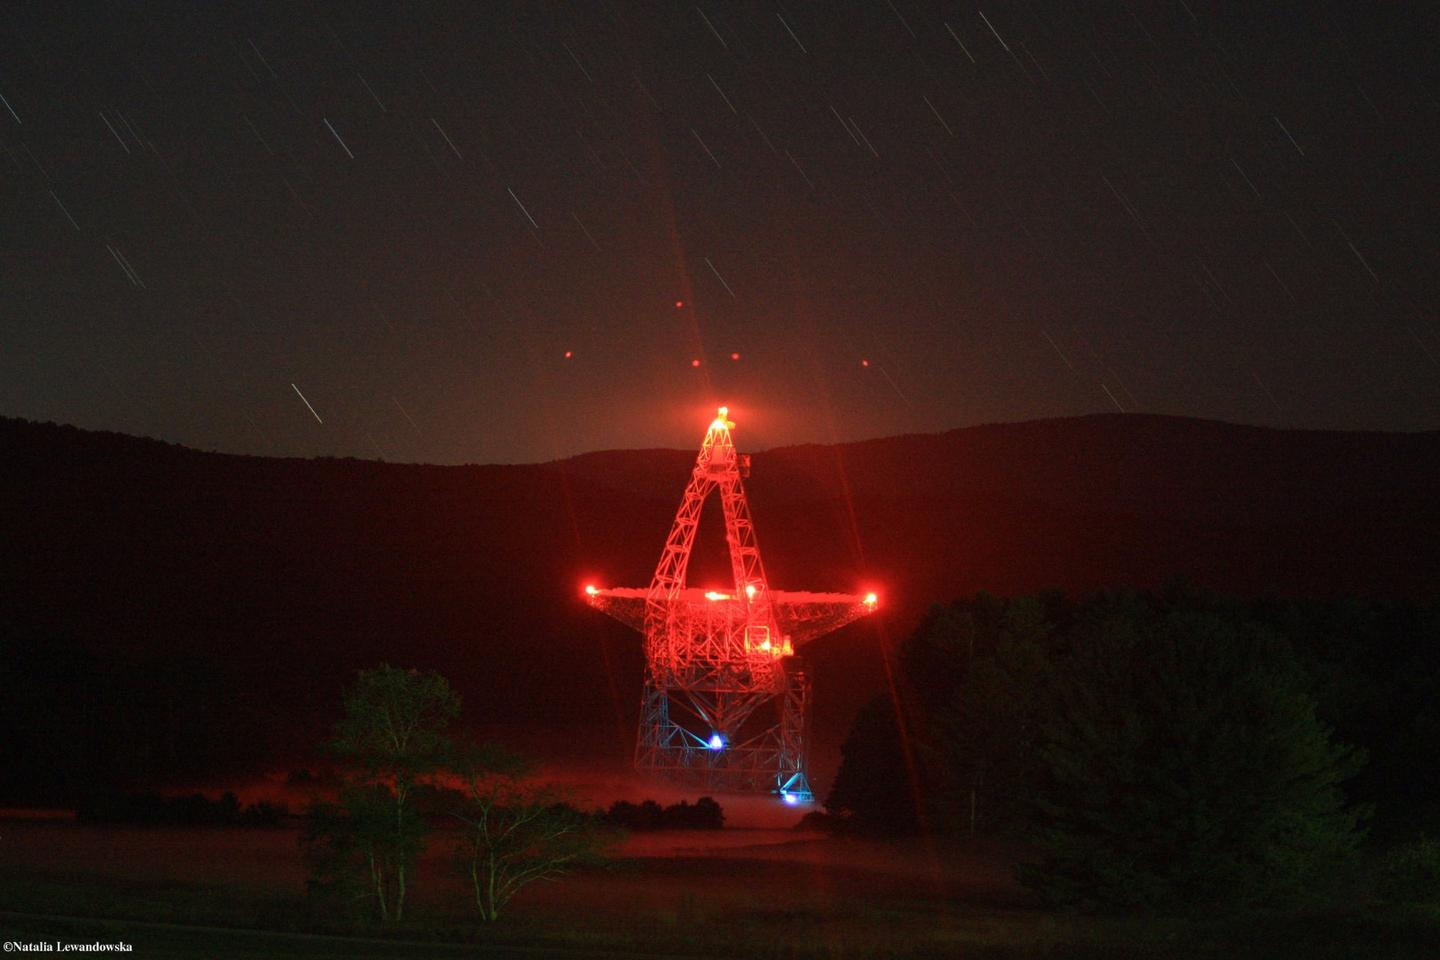 Astronomers at the Green Bank Telescope have detected 15 new fast radio burst signals, repeating over a matter of hours